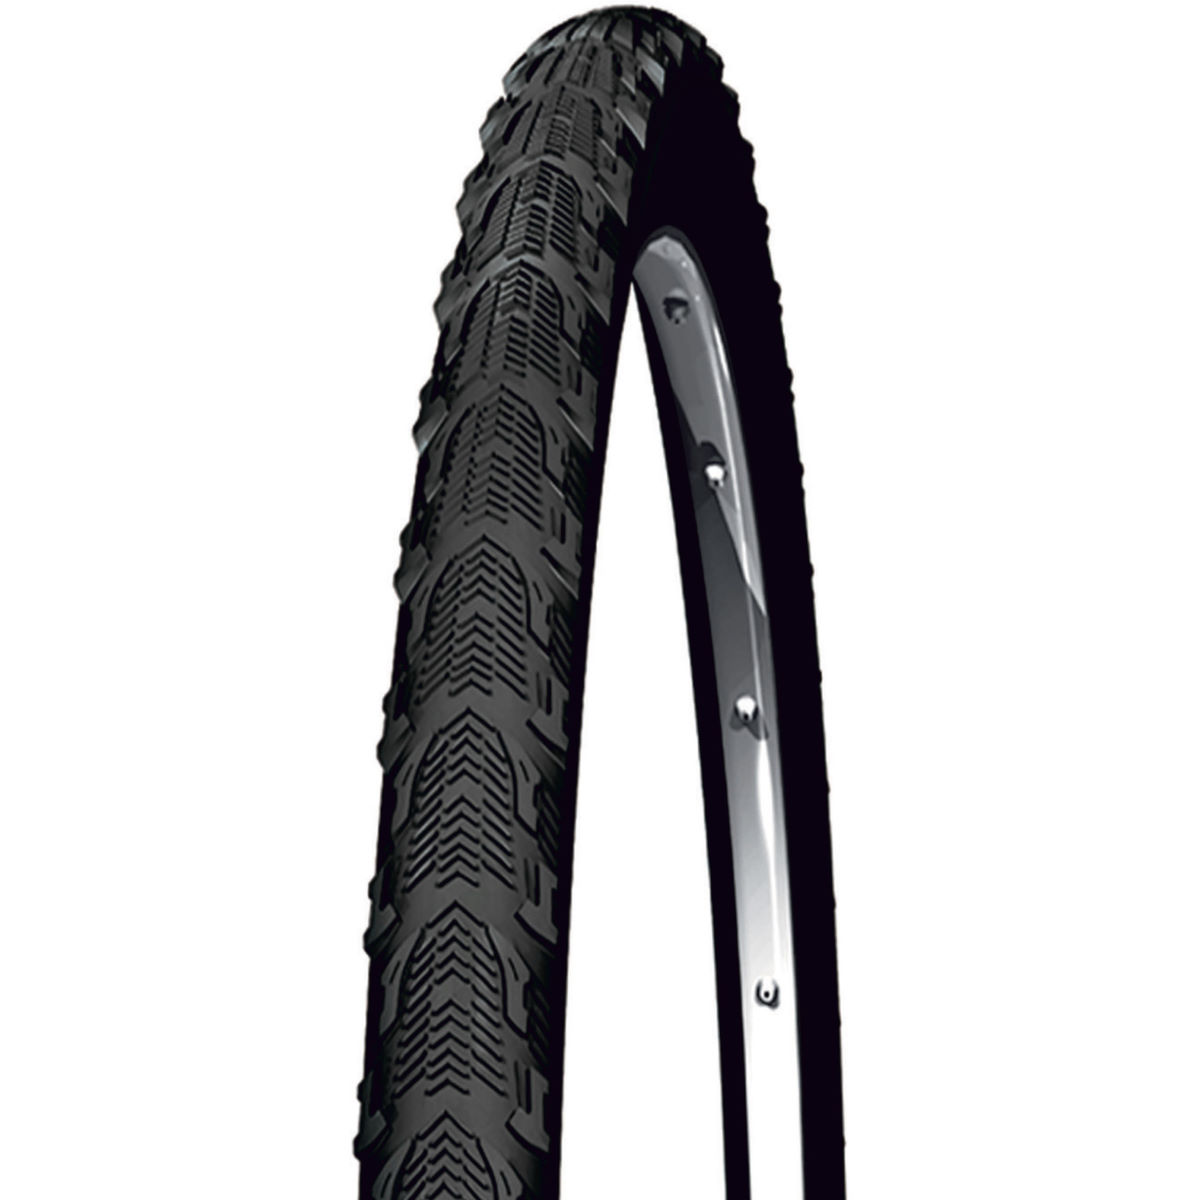 Pneu cyclo-cross Michelin Cyclocross Jet (souple) - 700 x 30c 700c